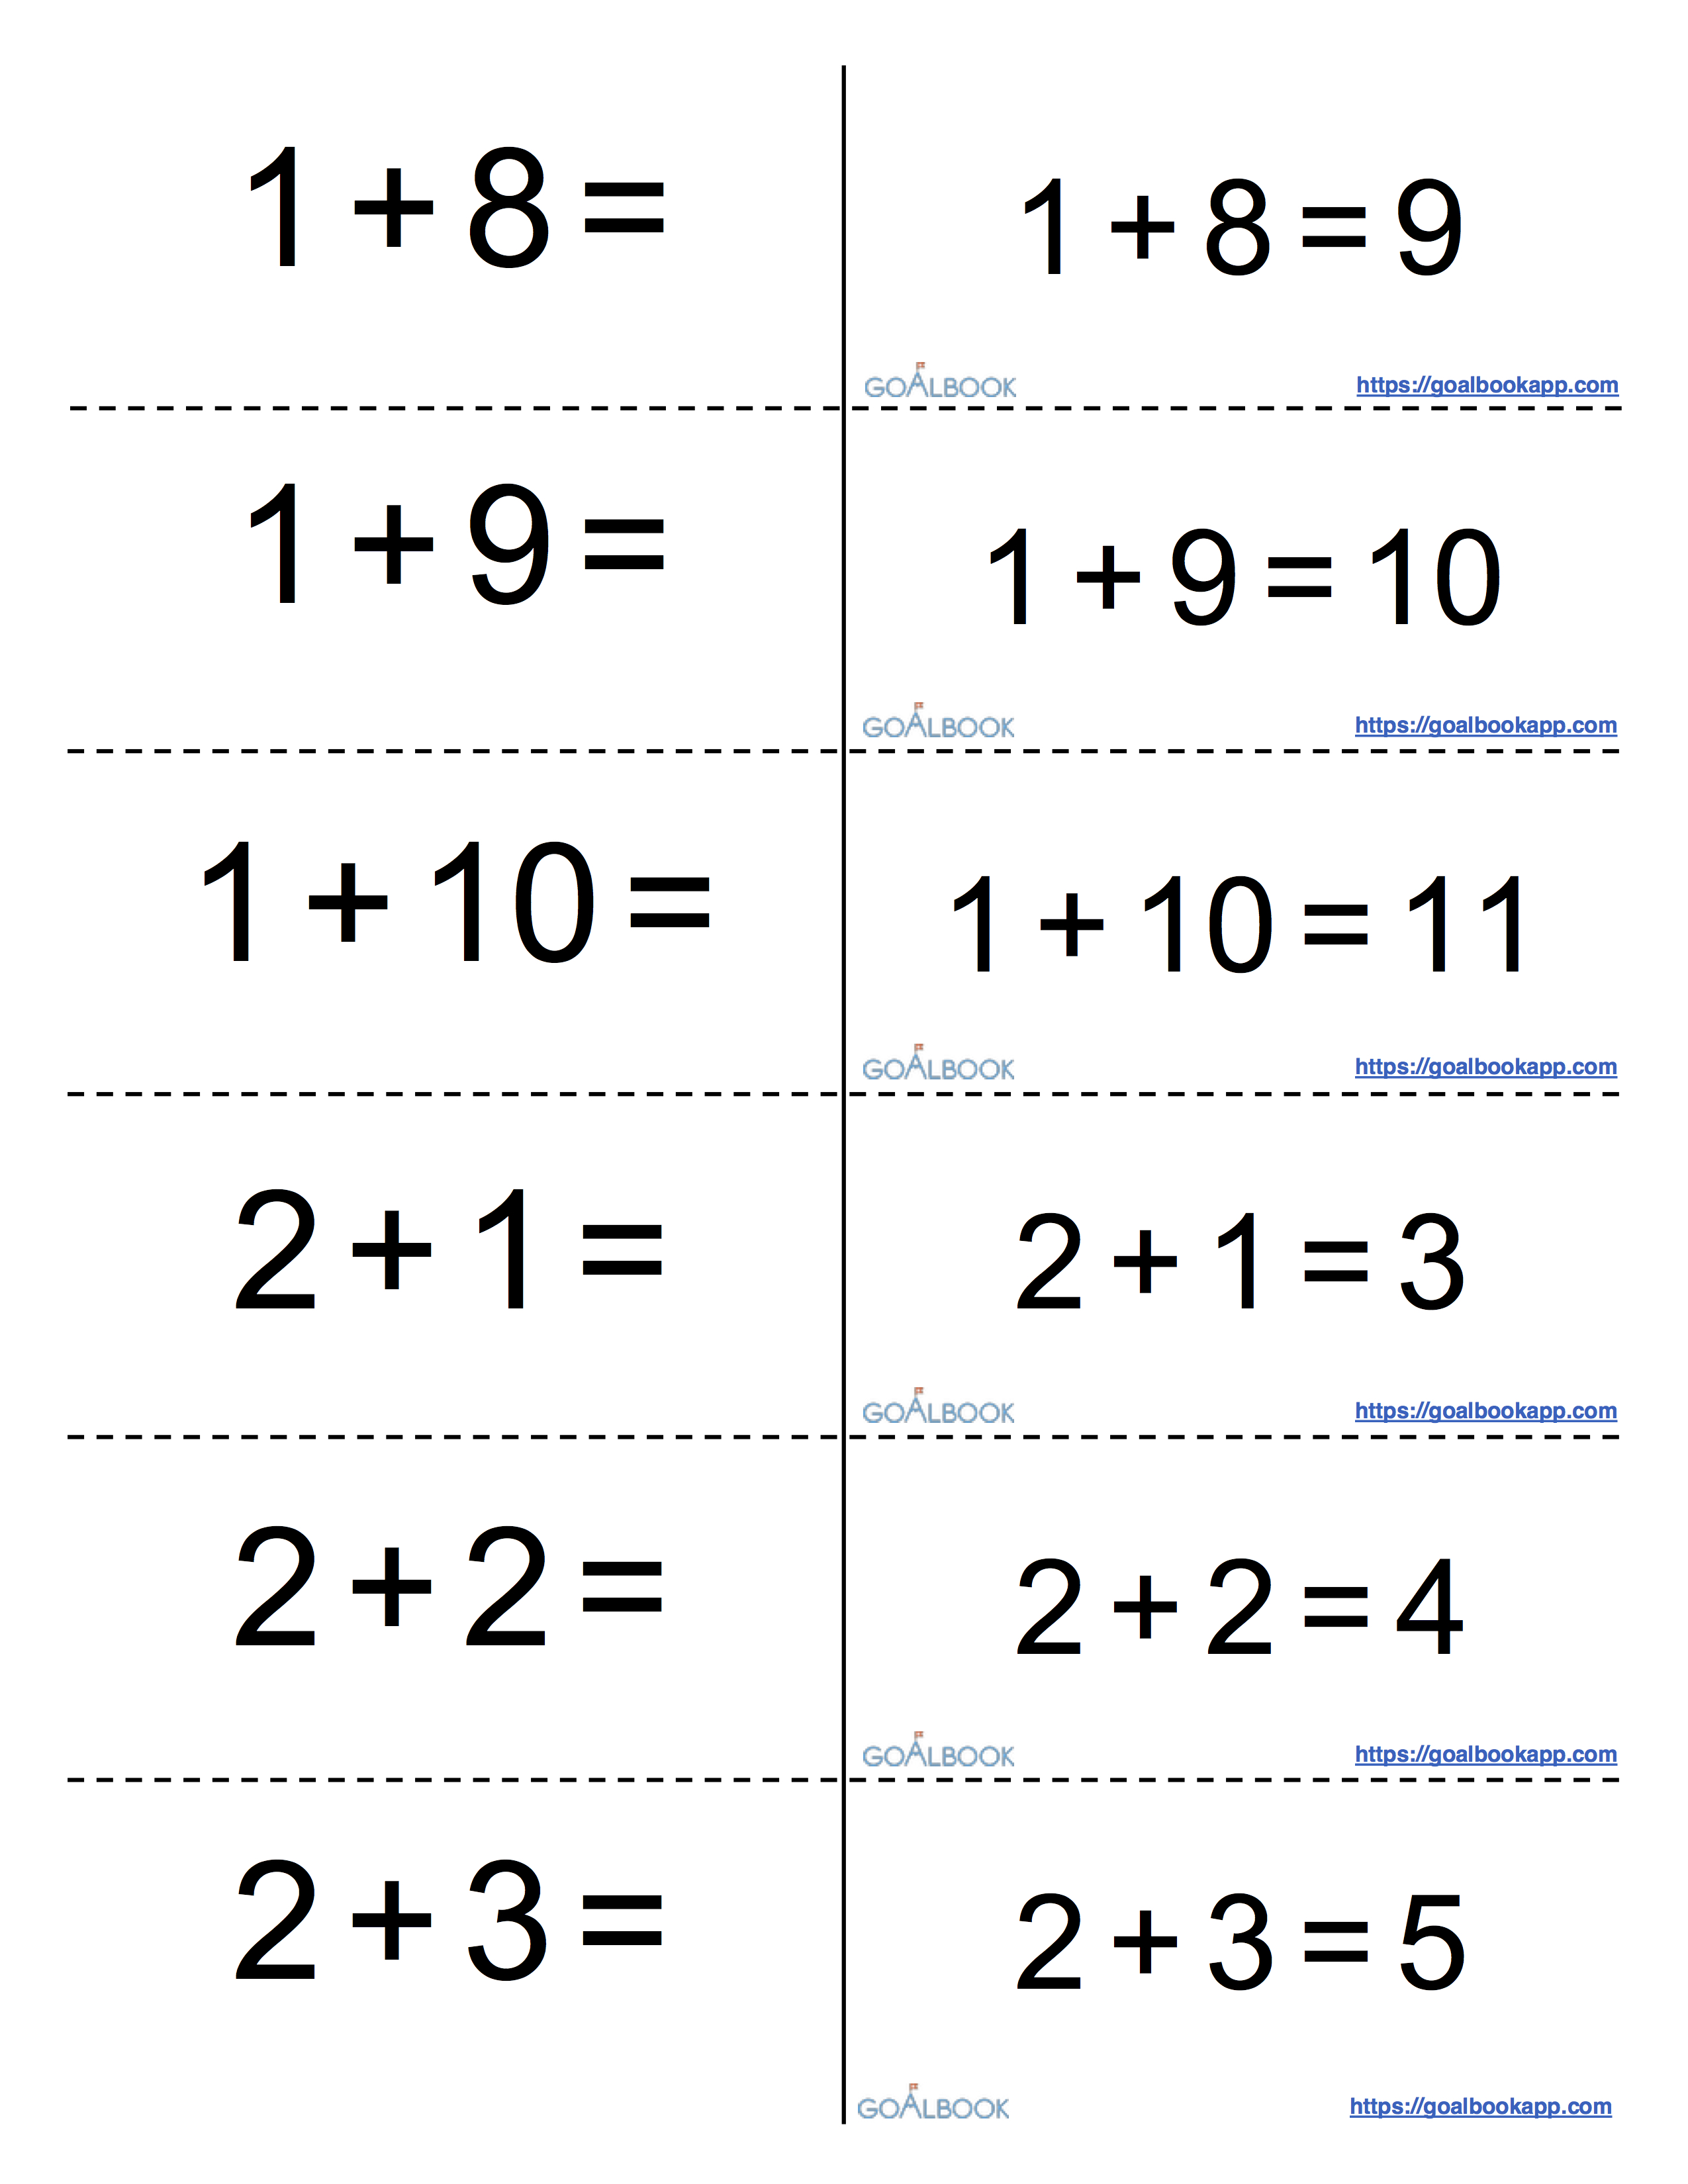 Worksheet Printable Division Flashcards math flashcards goalbook pathways full resource contains